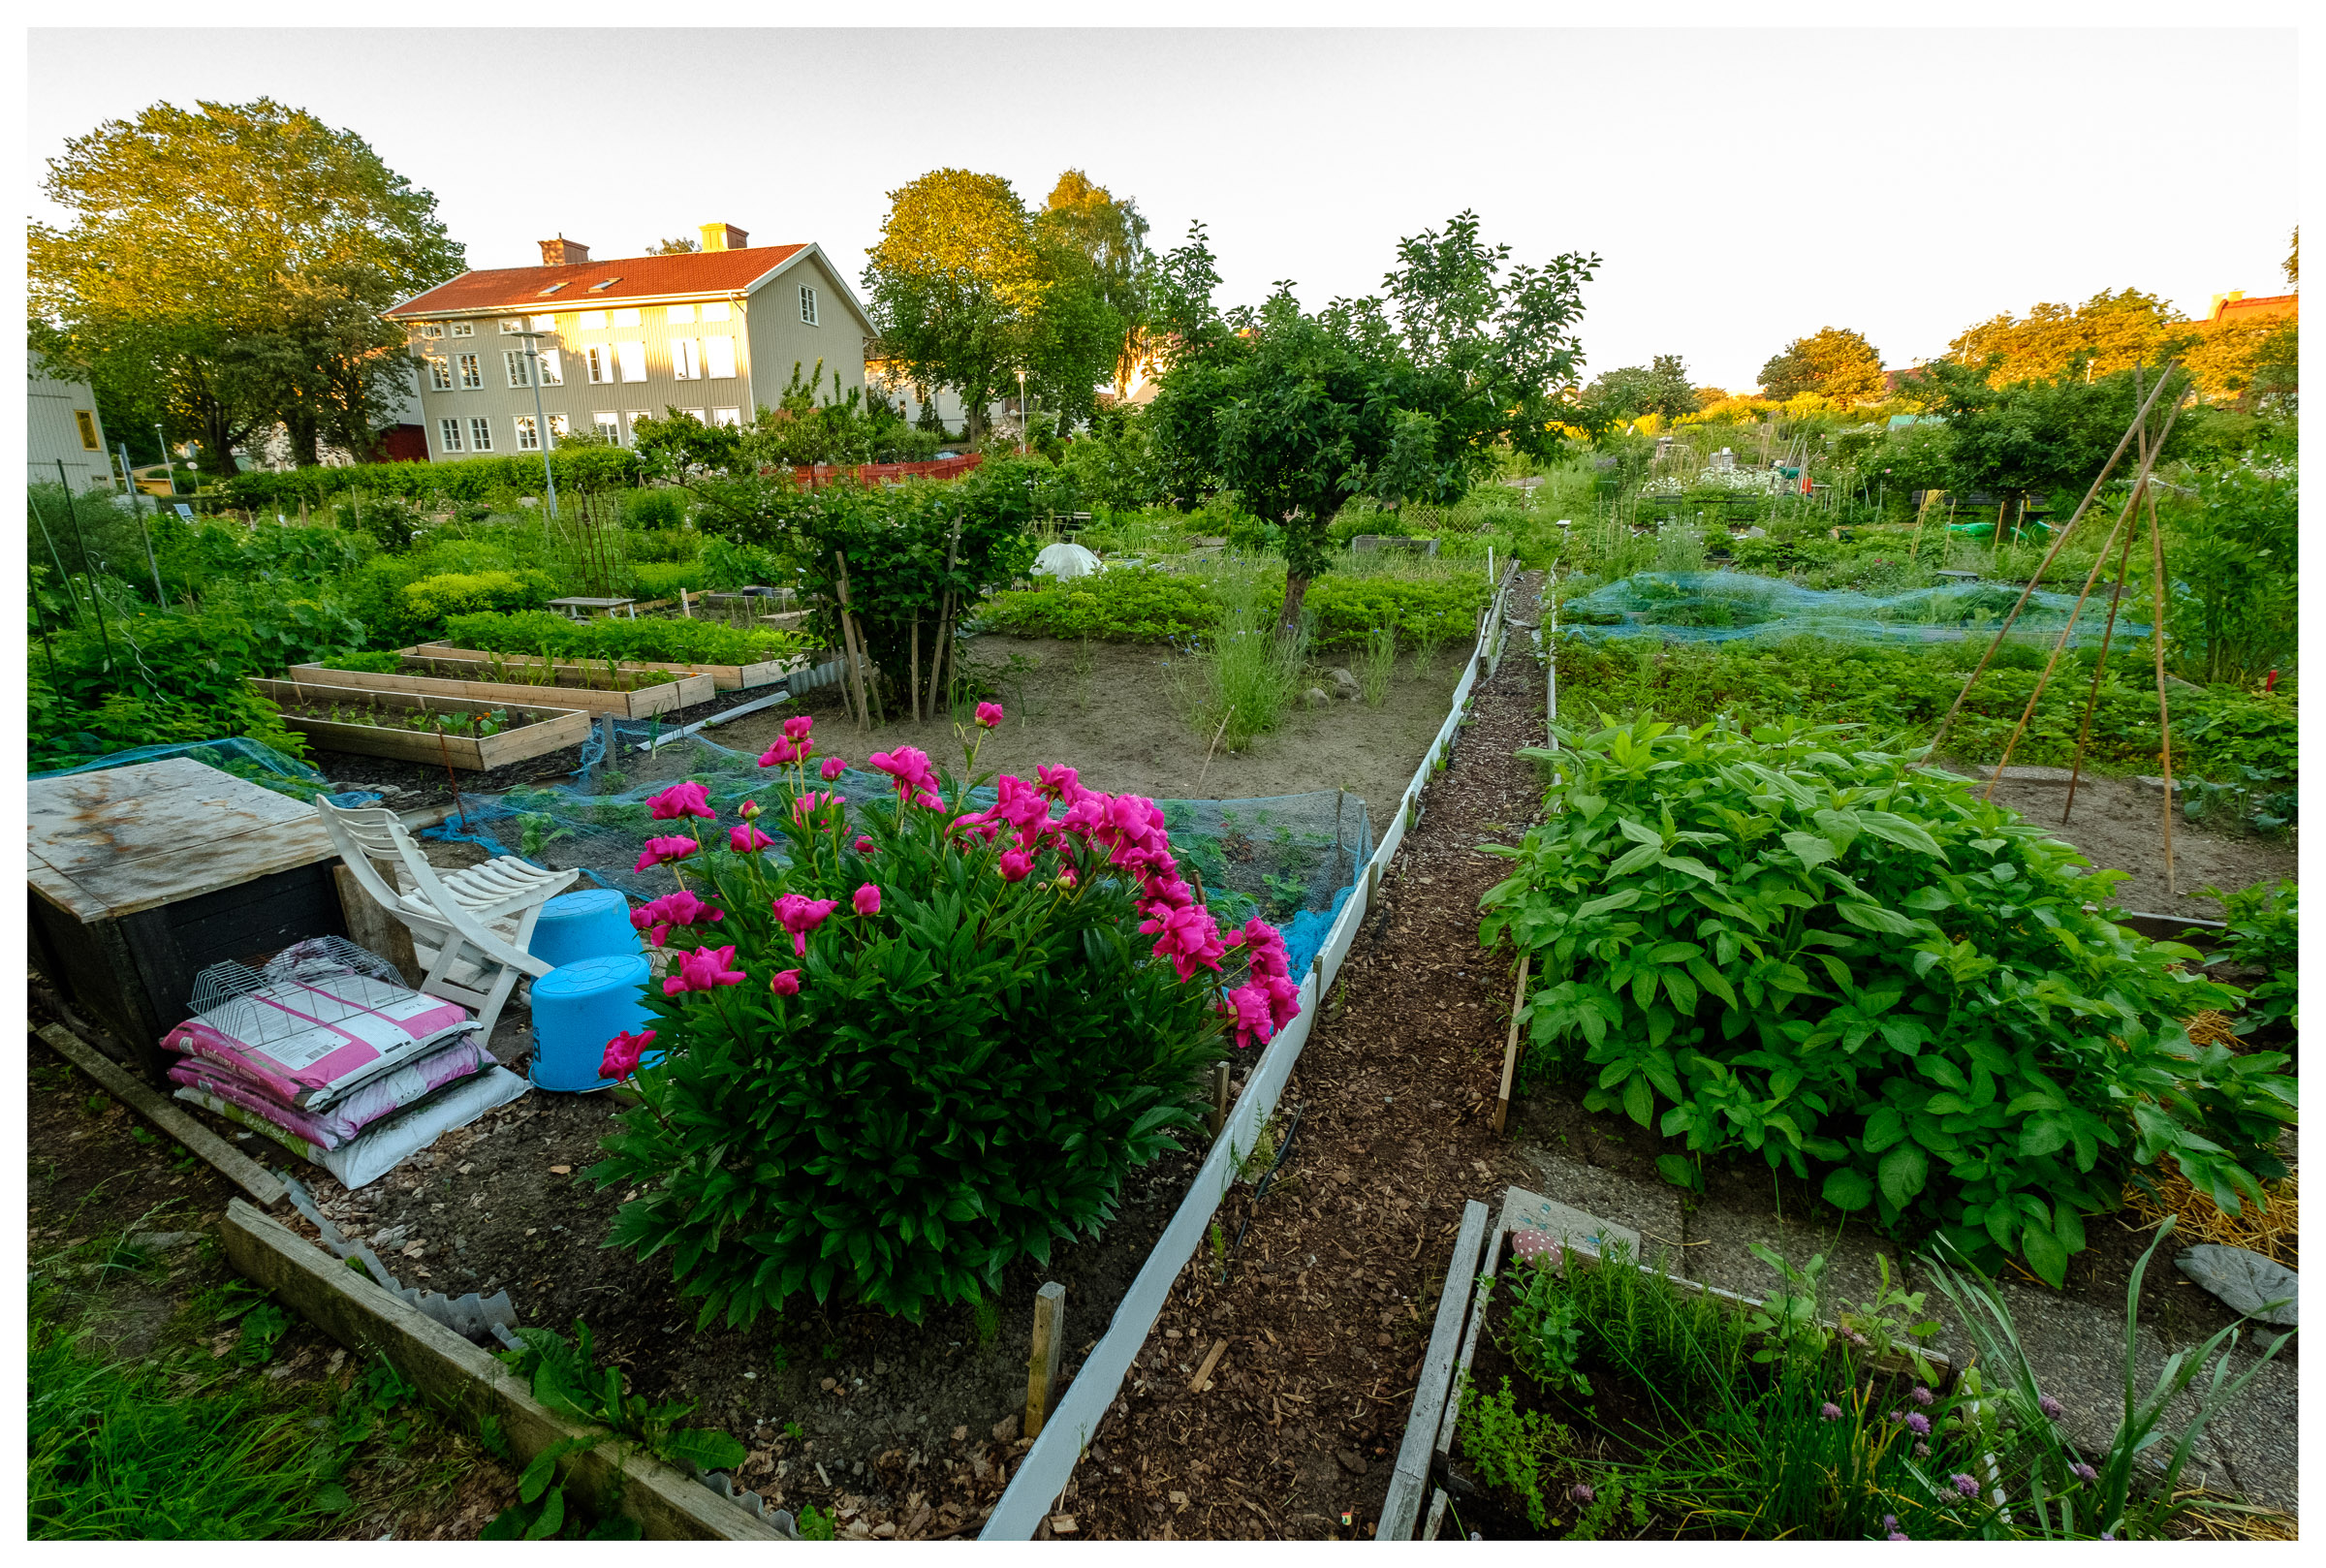 Vegetable and flower gardens by Slottsberget